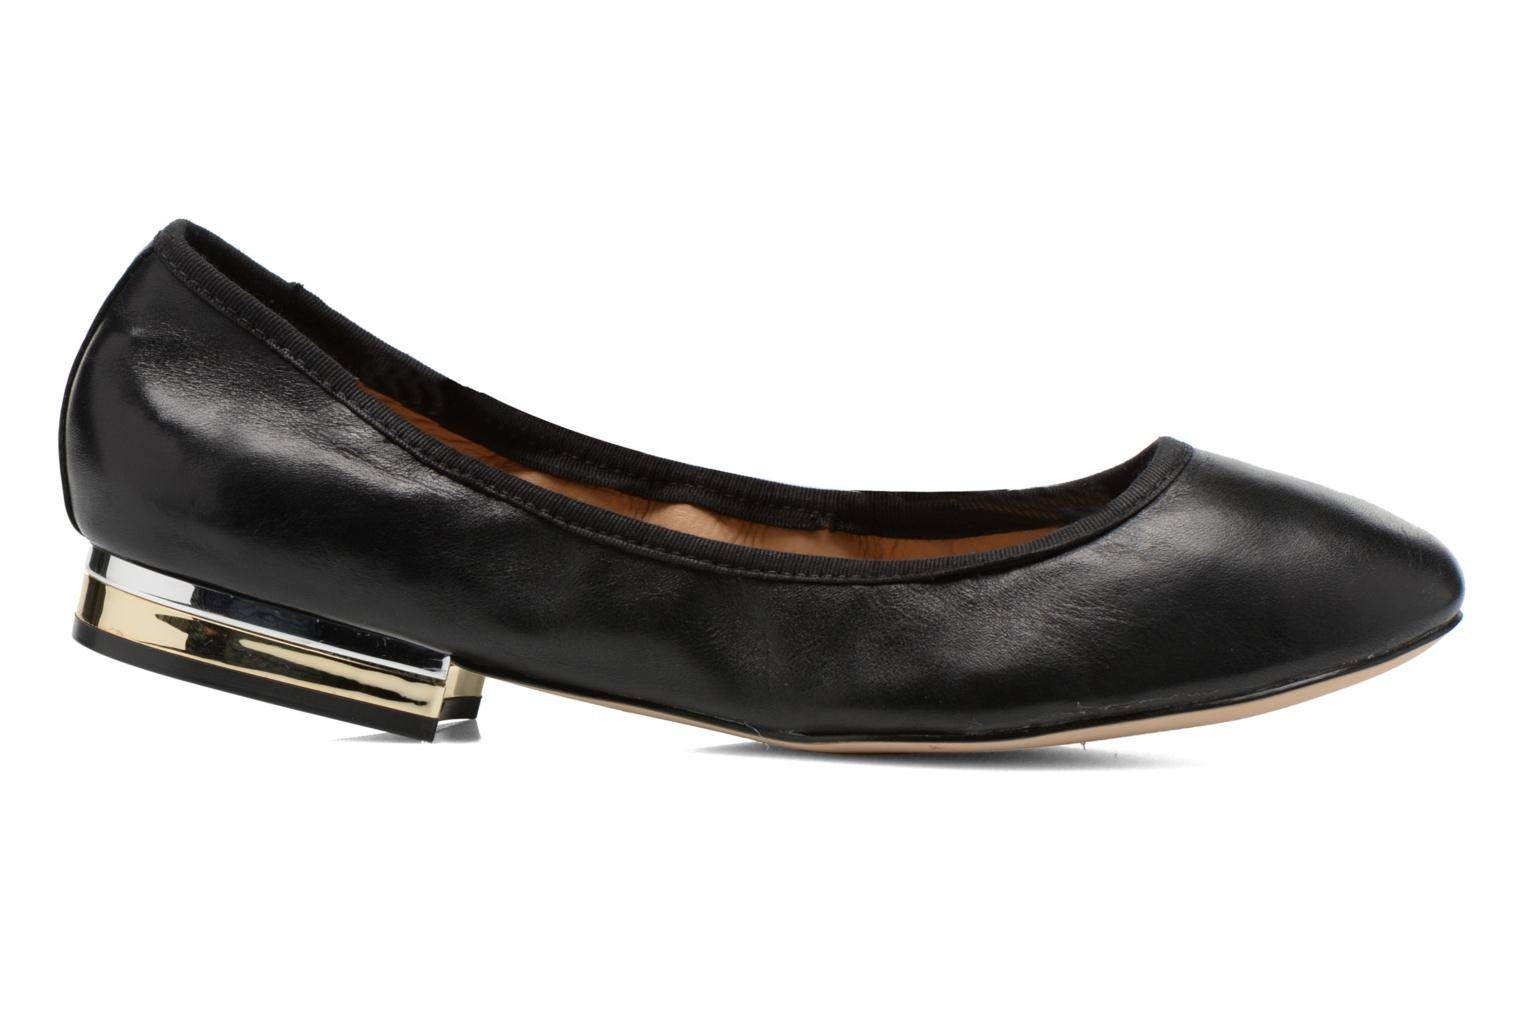 Topley Black leather